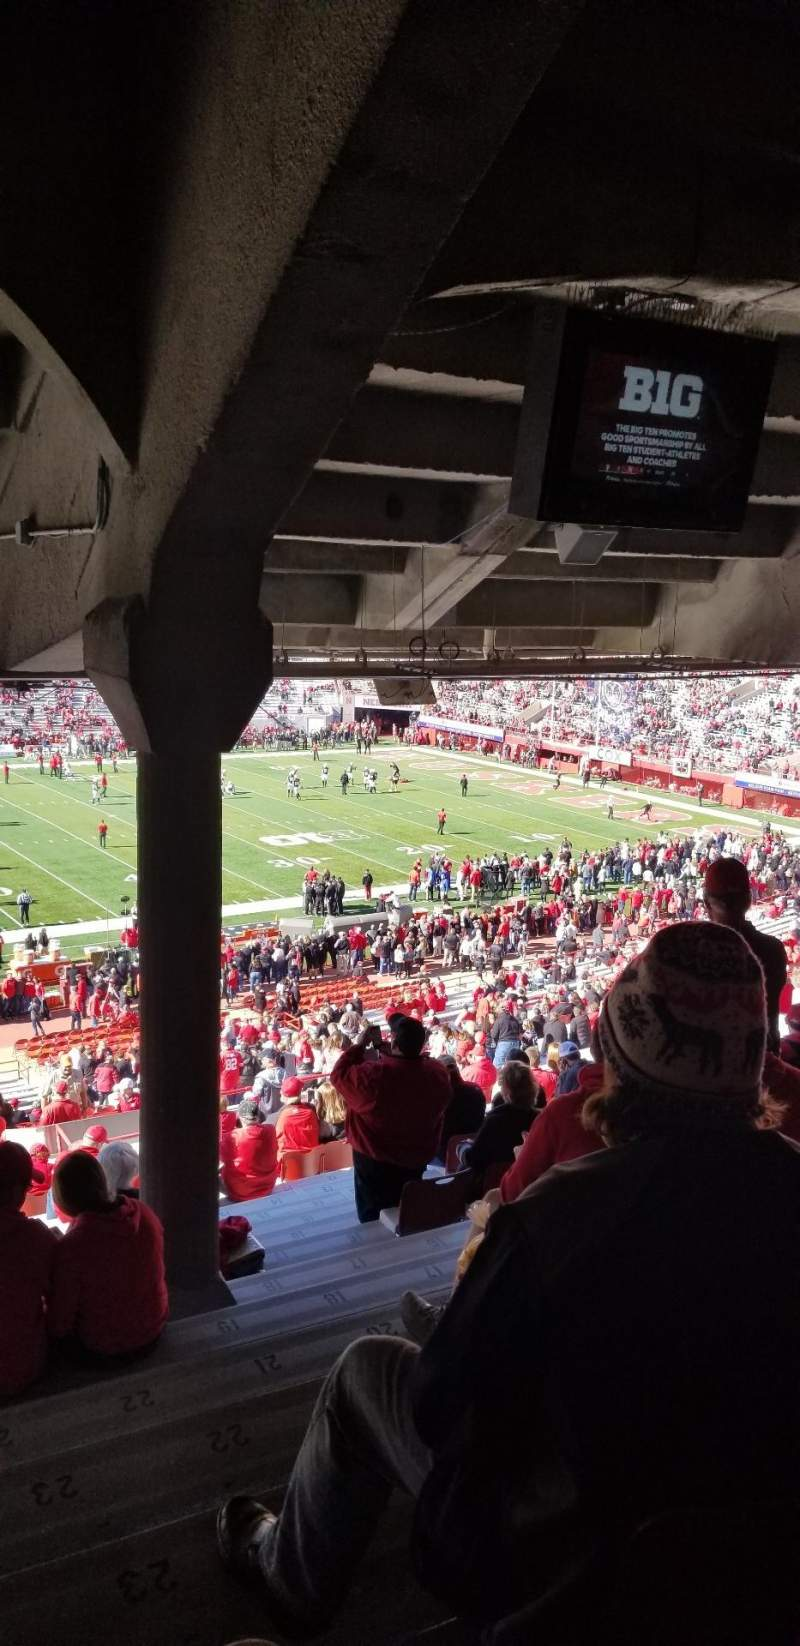 Seating view for Memorial Stadium (Lincoln) Section 7 Row 44 Seat 23